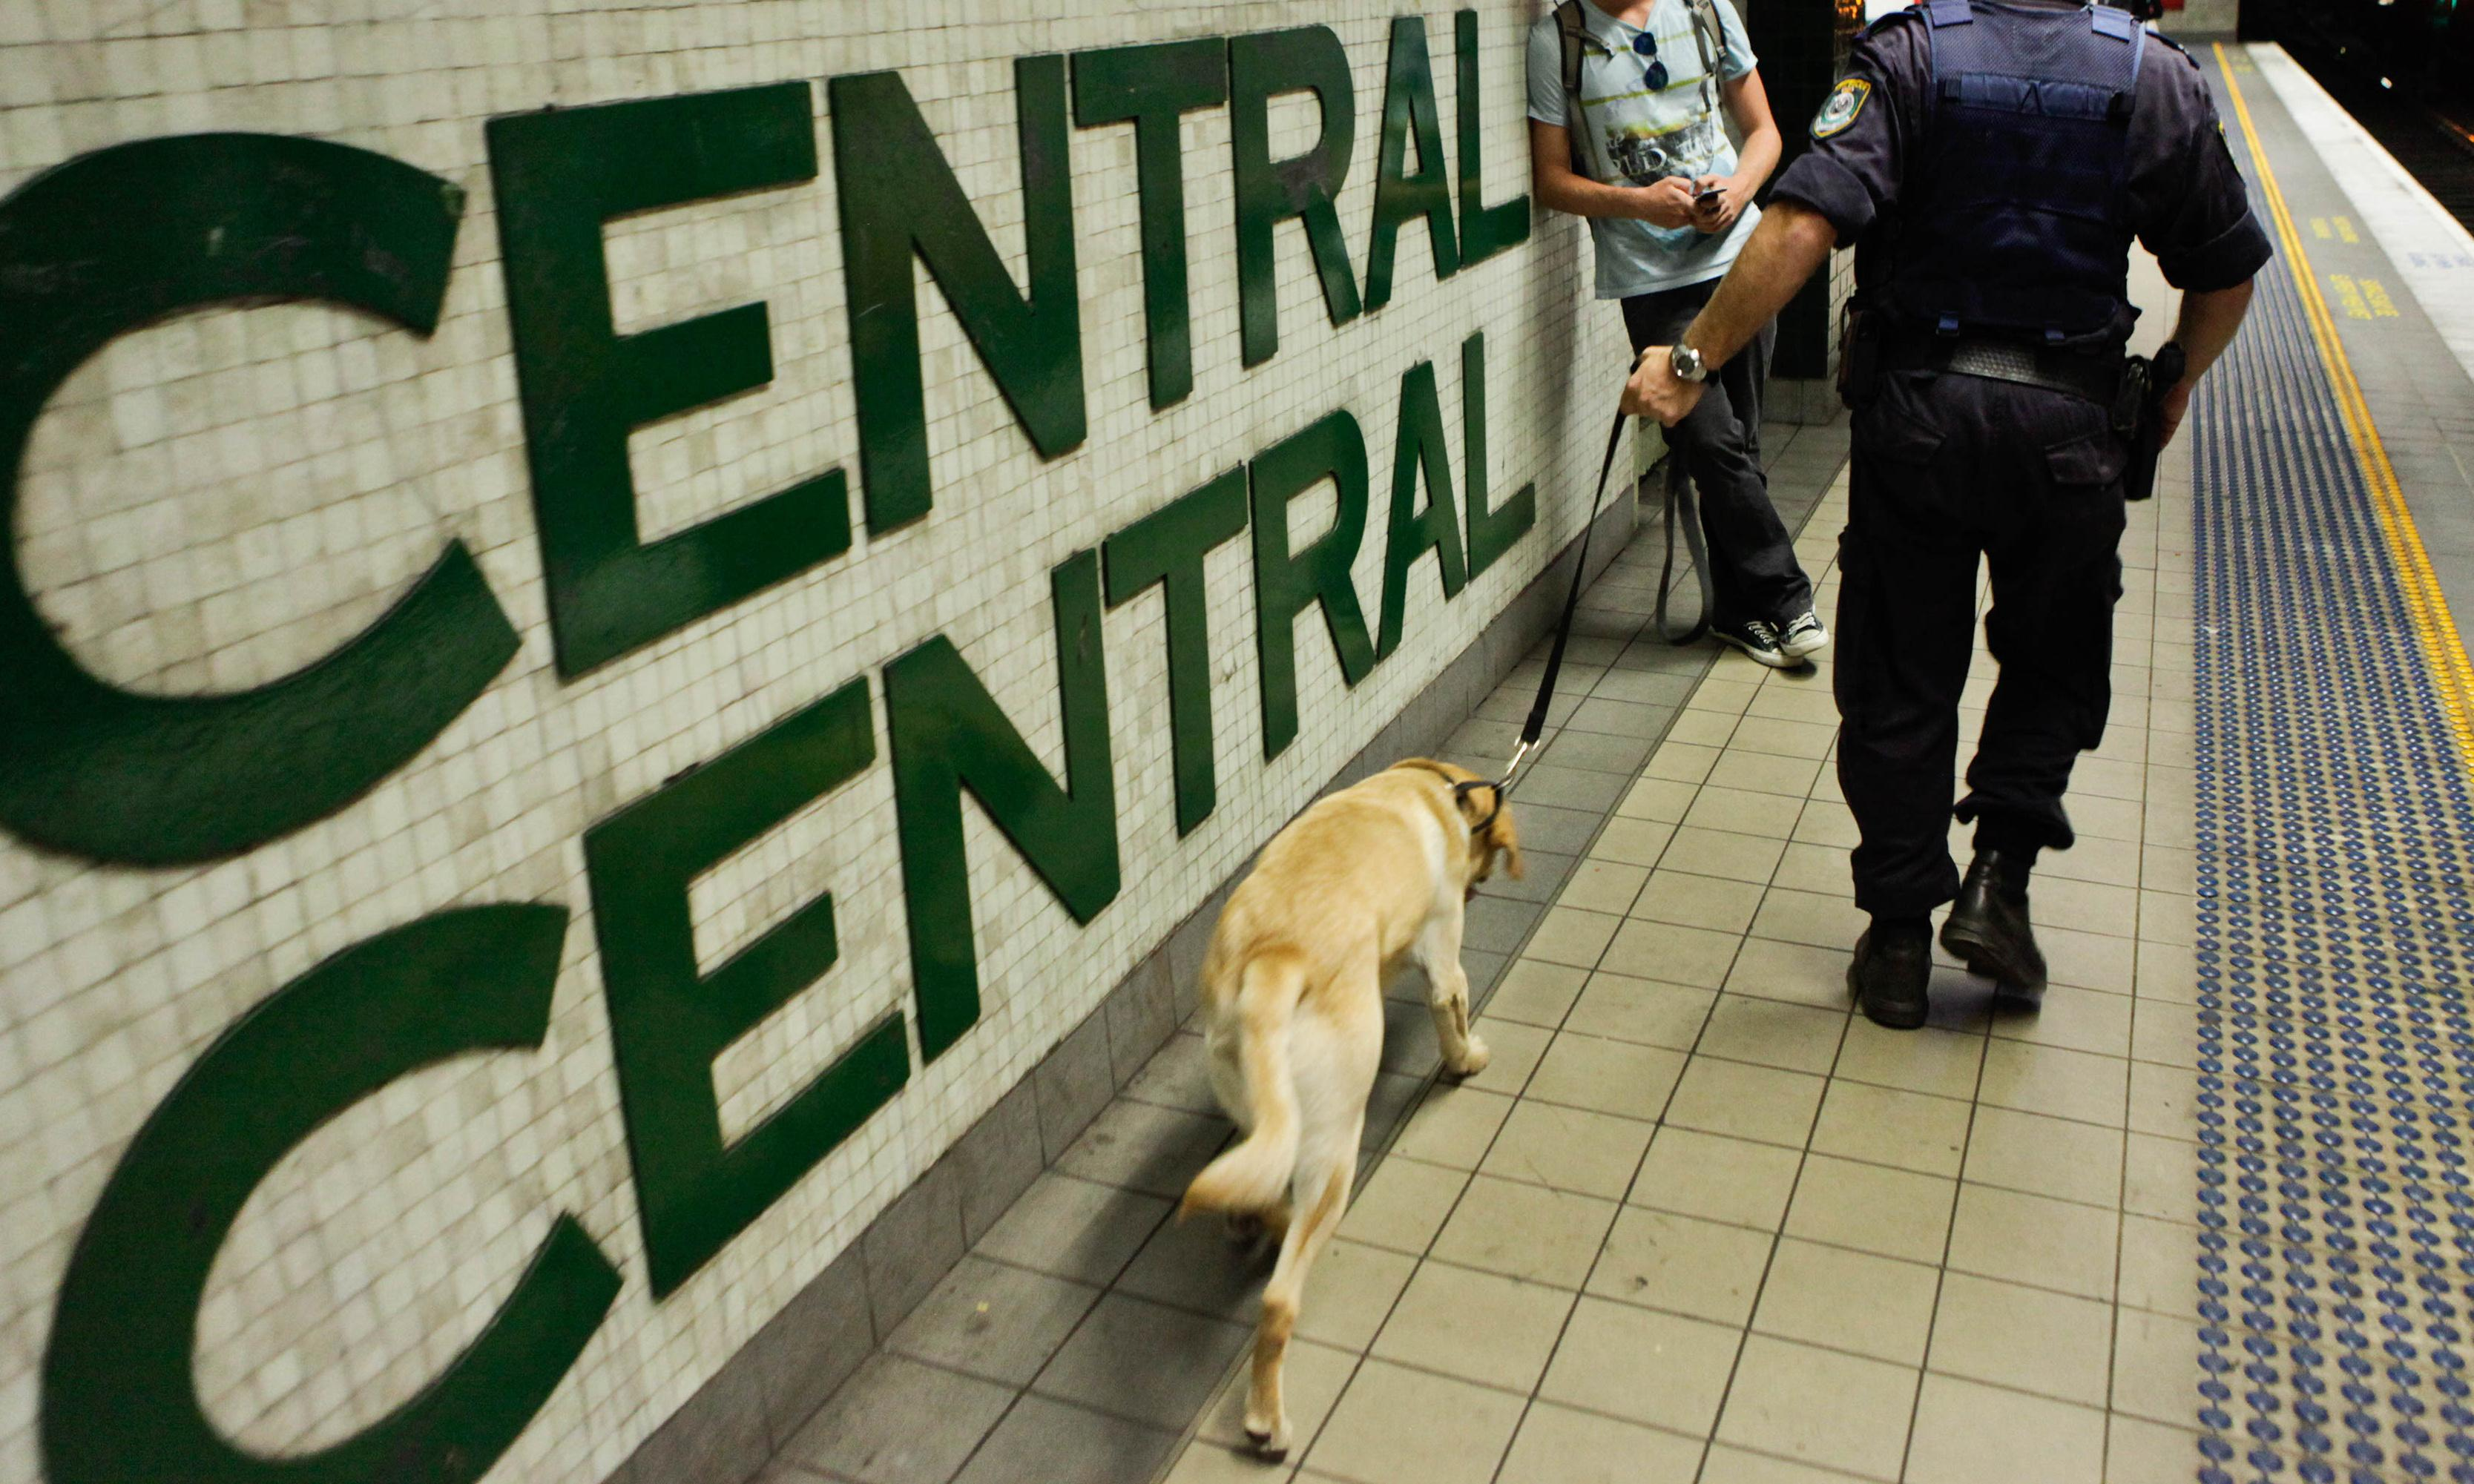 'Extraordinary rise' in strip-searches by NSW police fuelled by use of sniffer dogs